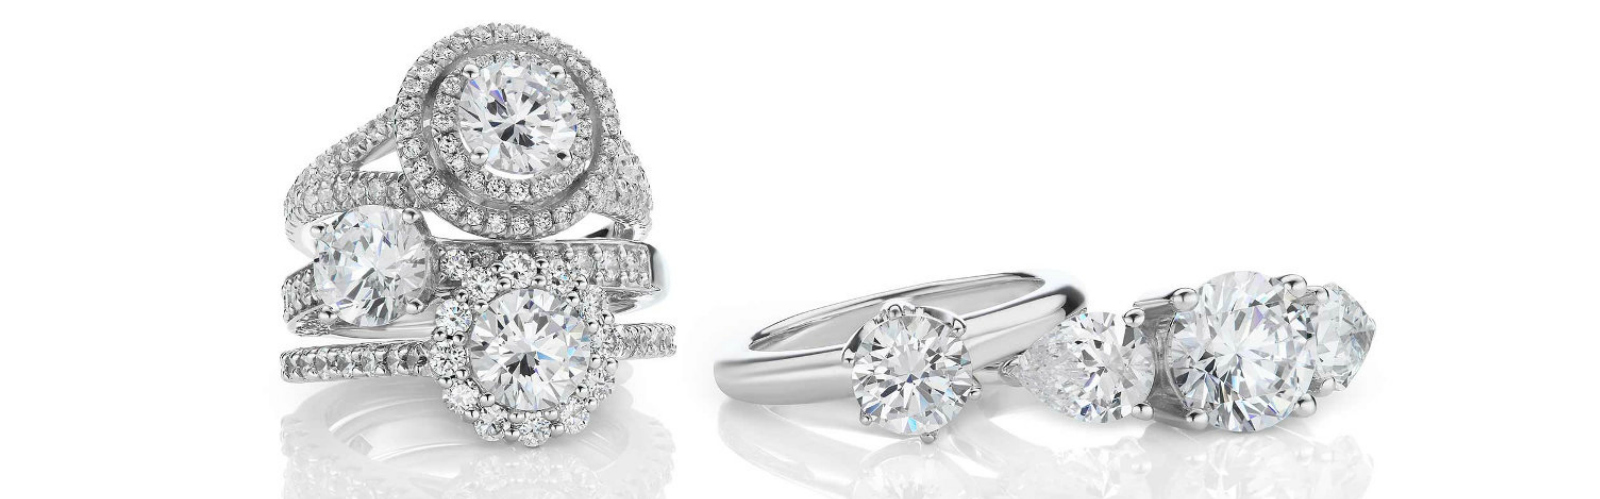 engagement rings sparkling in light showing the quality from buying guide